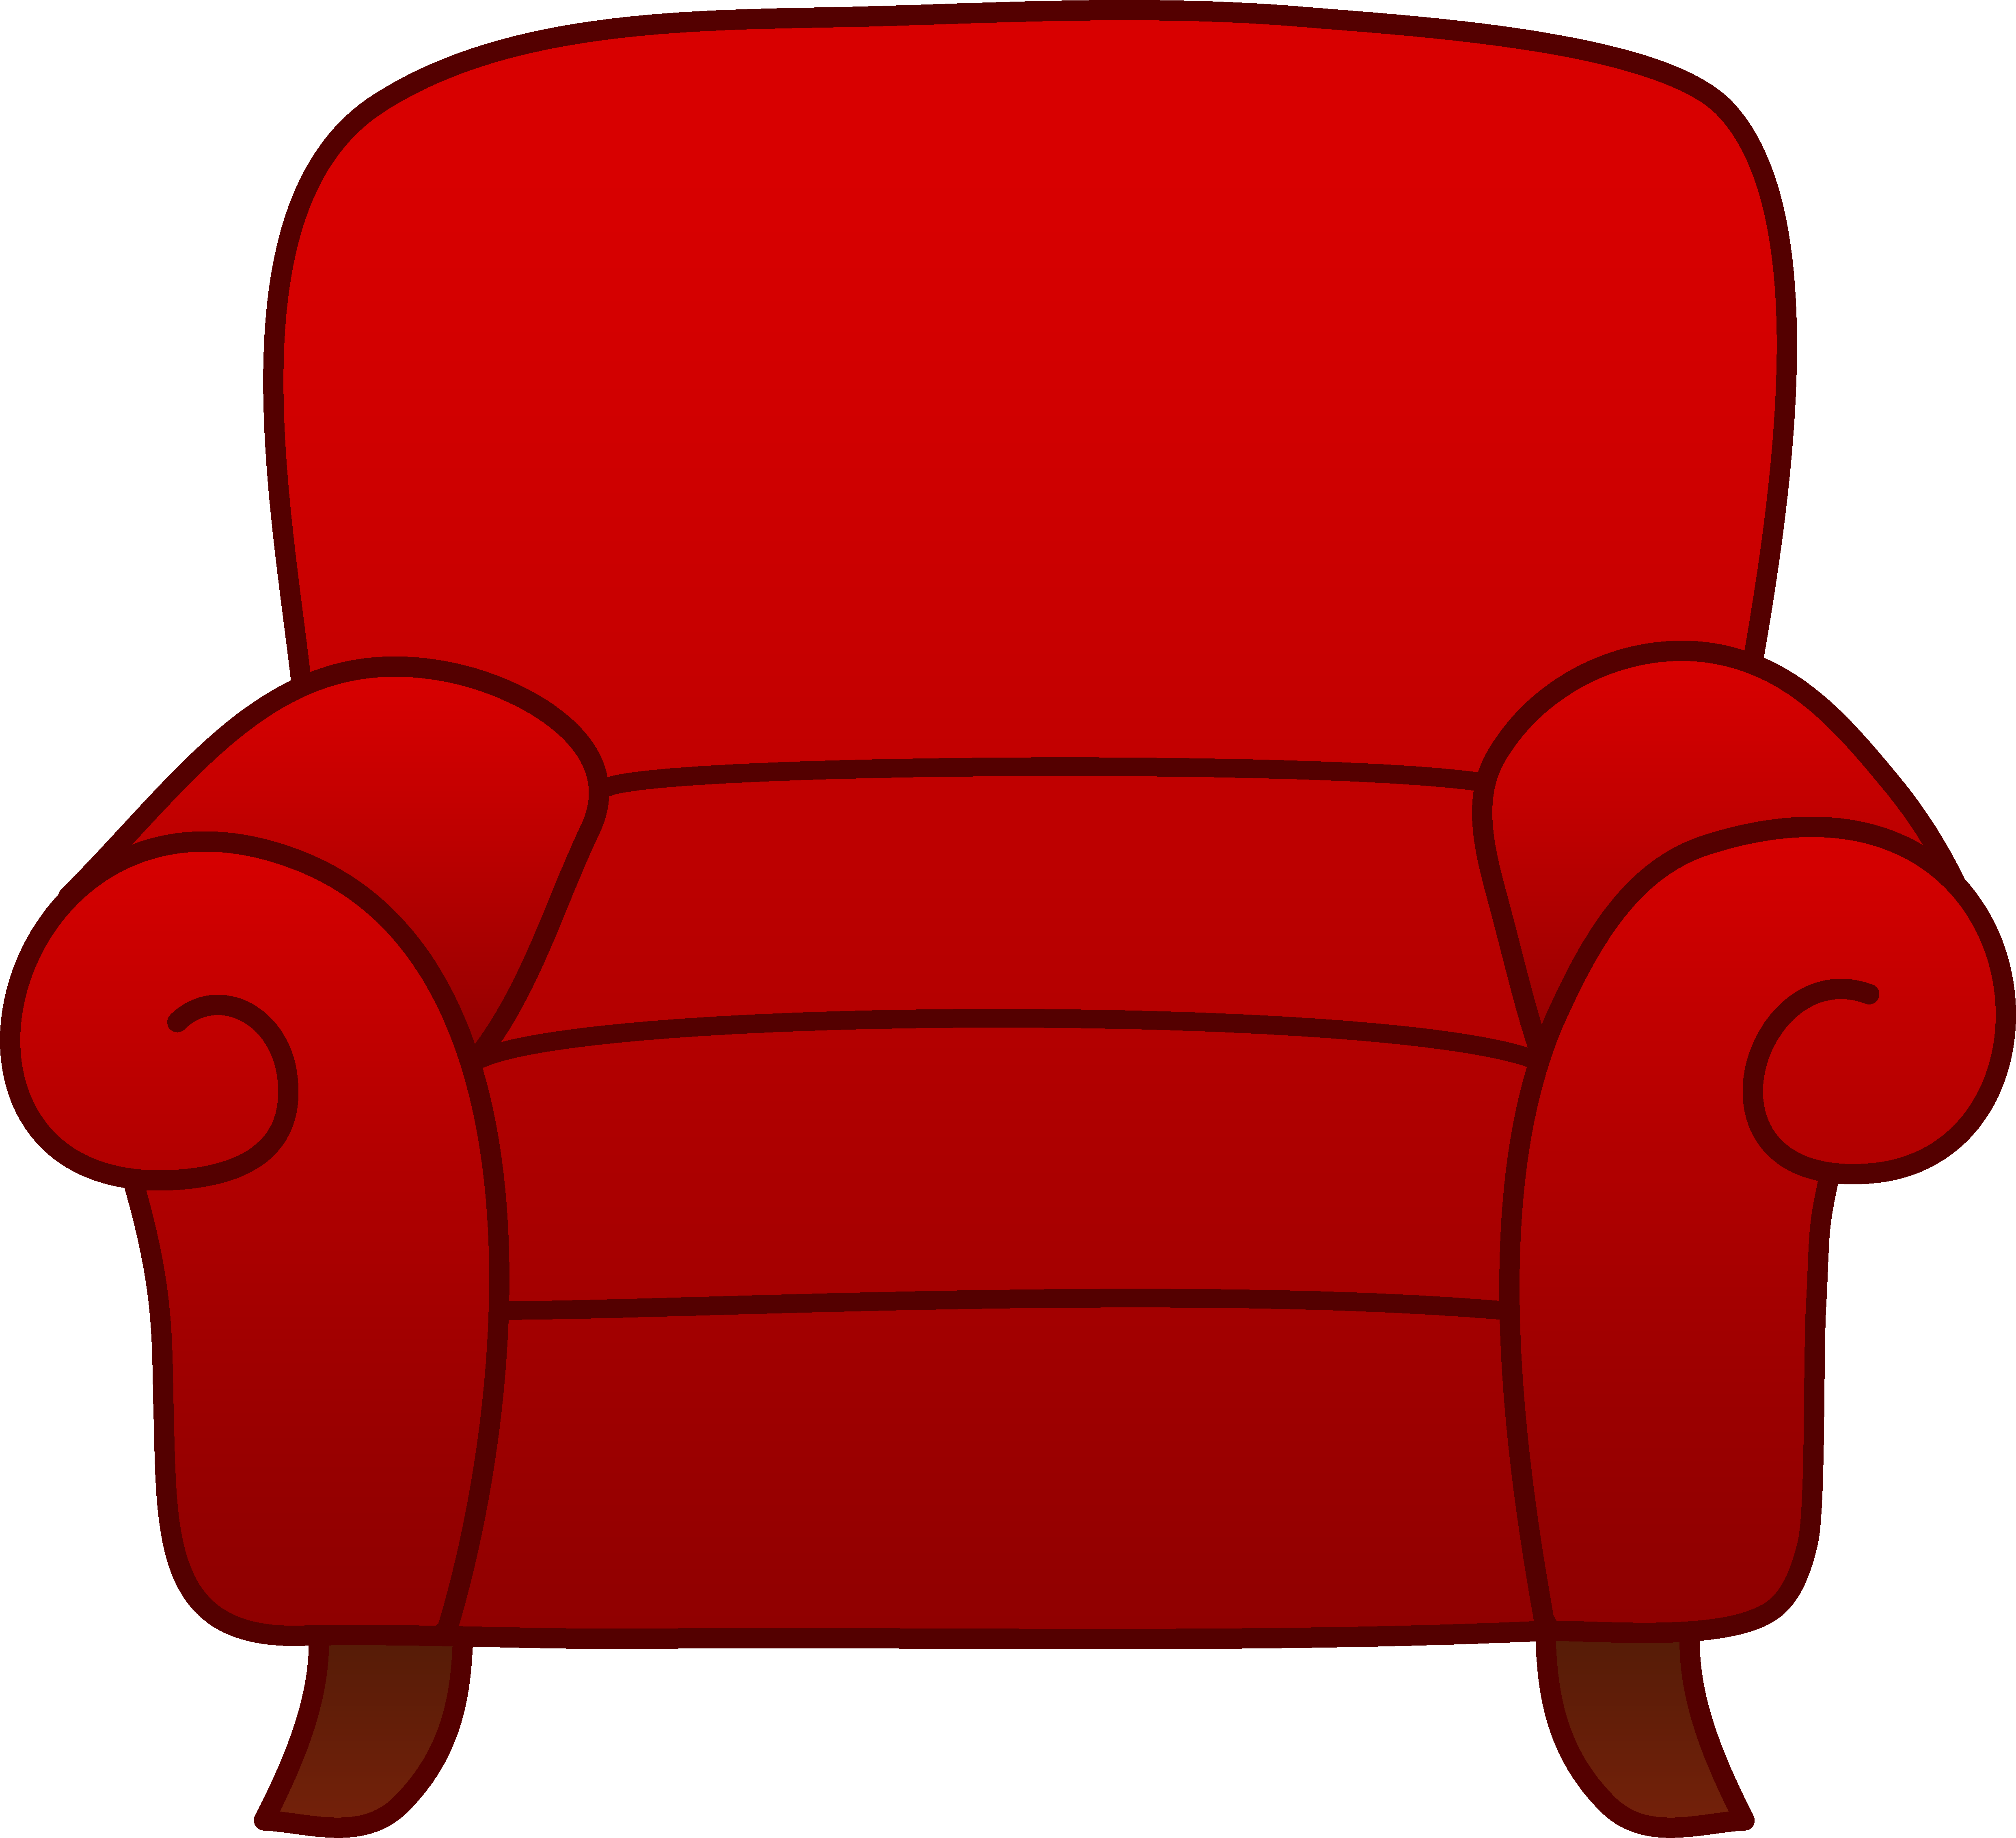 Furniture clipart couch. Roter sessel berpr fen